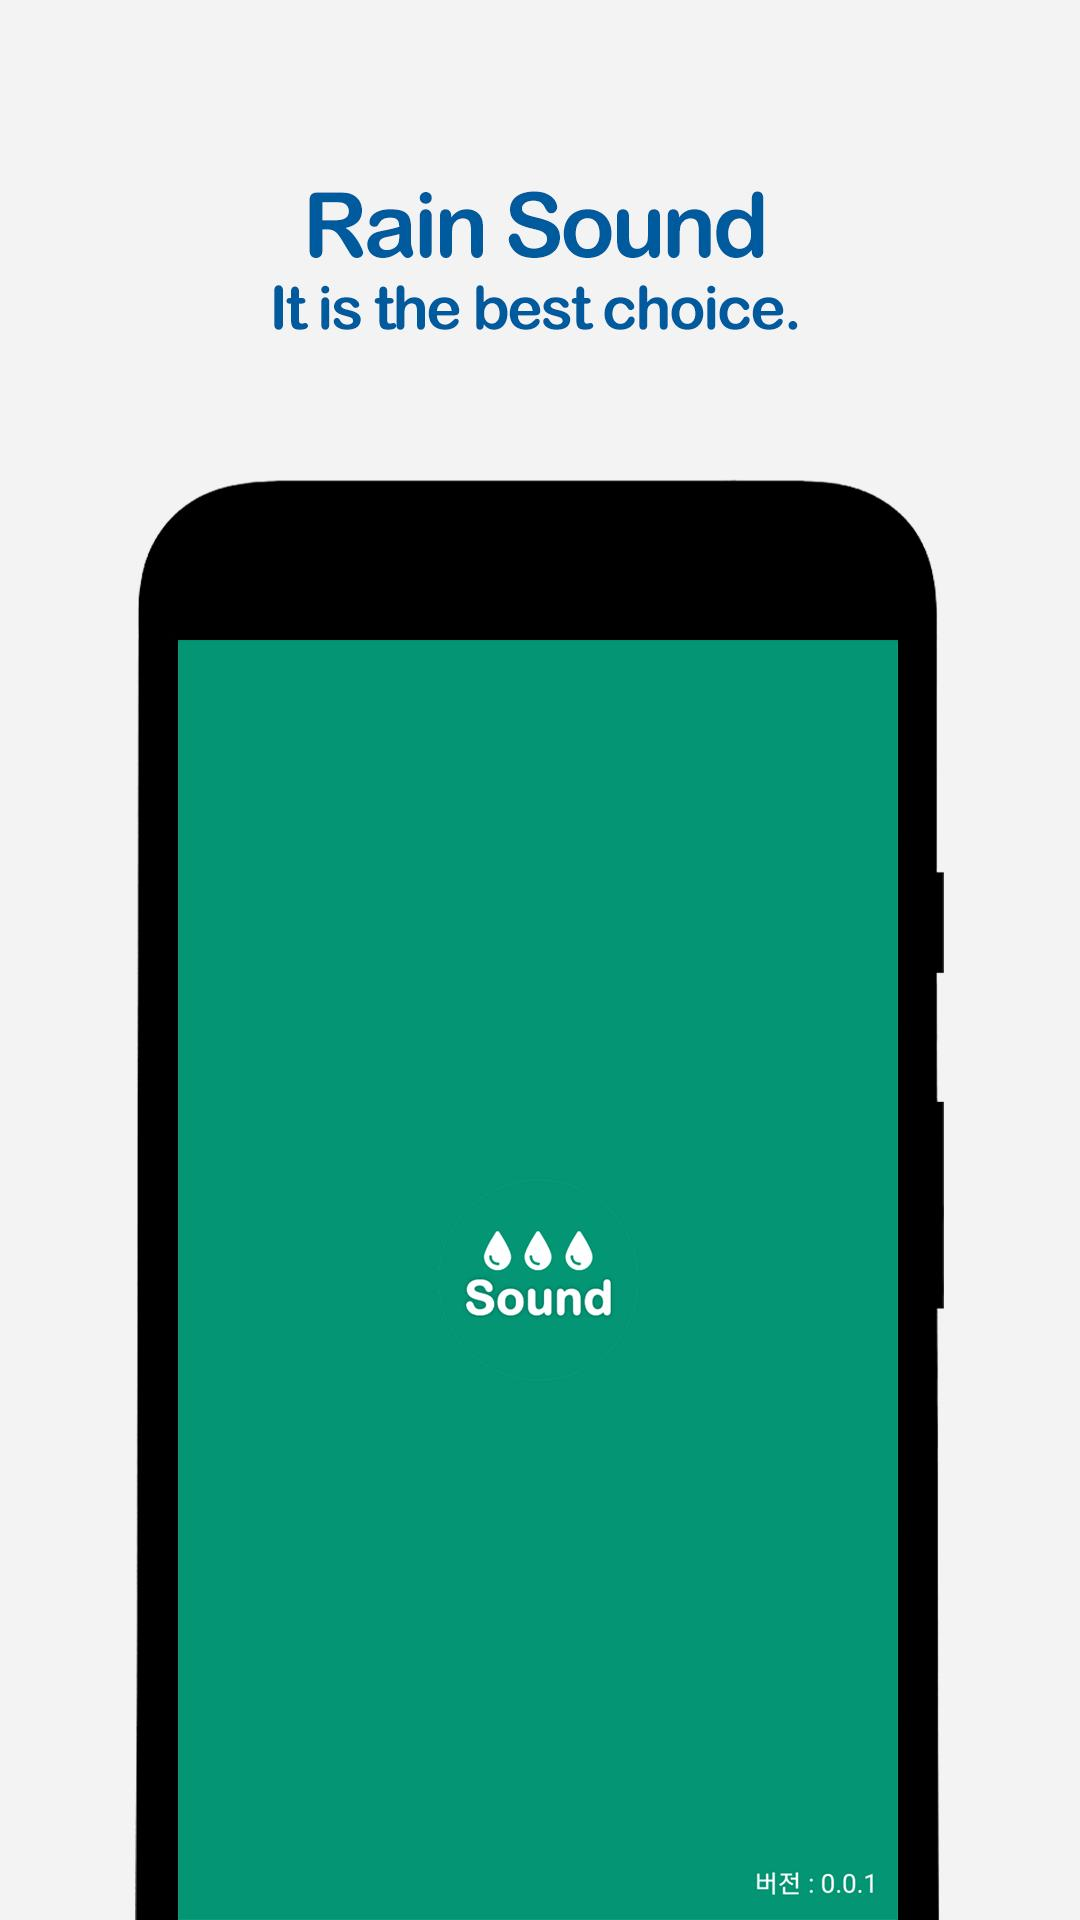 White noise sleeping app - rain sound for Android - APK Download